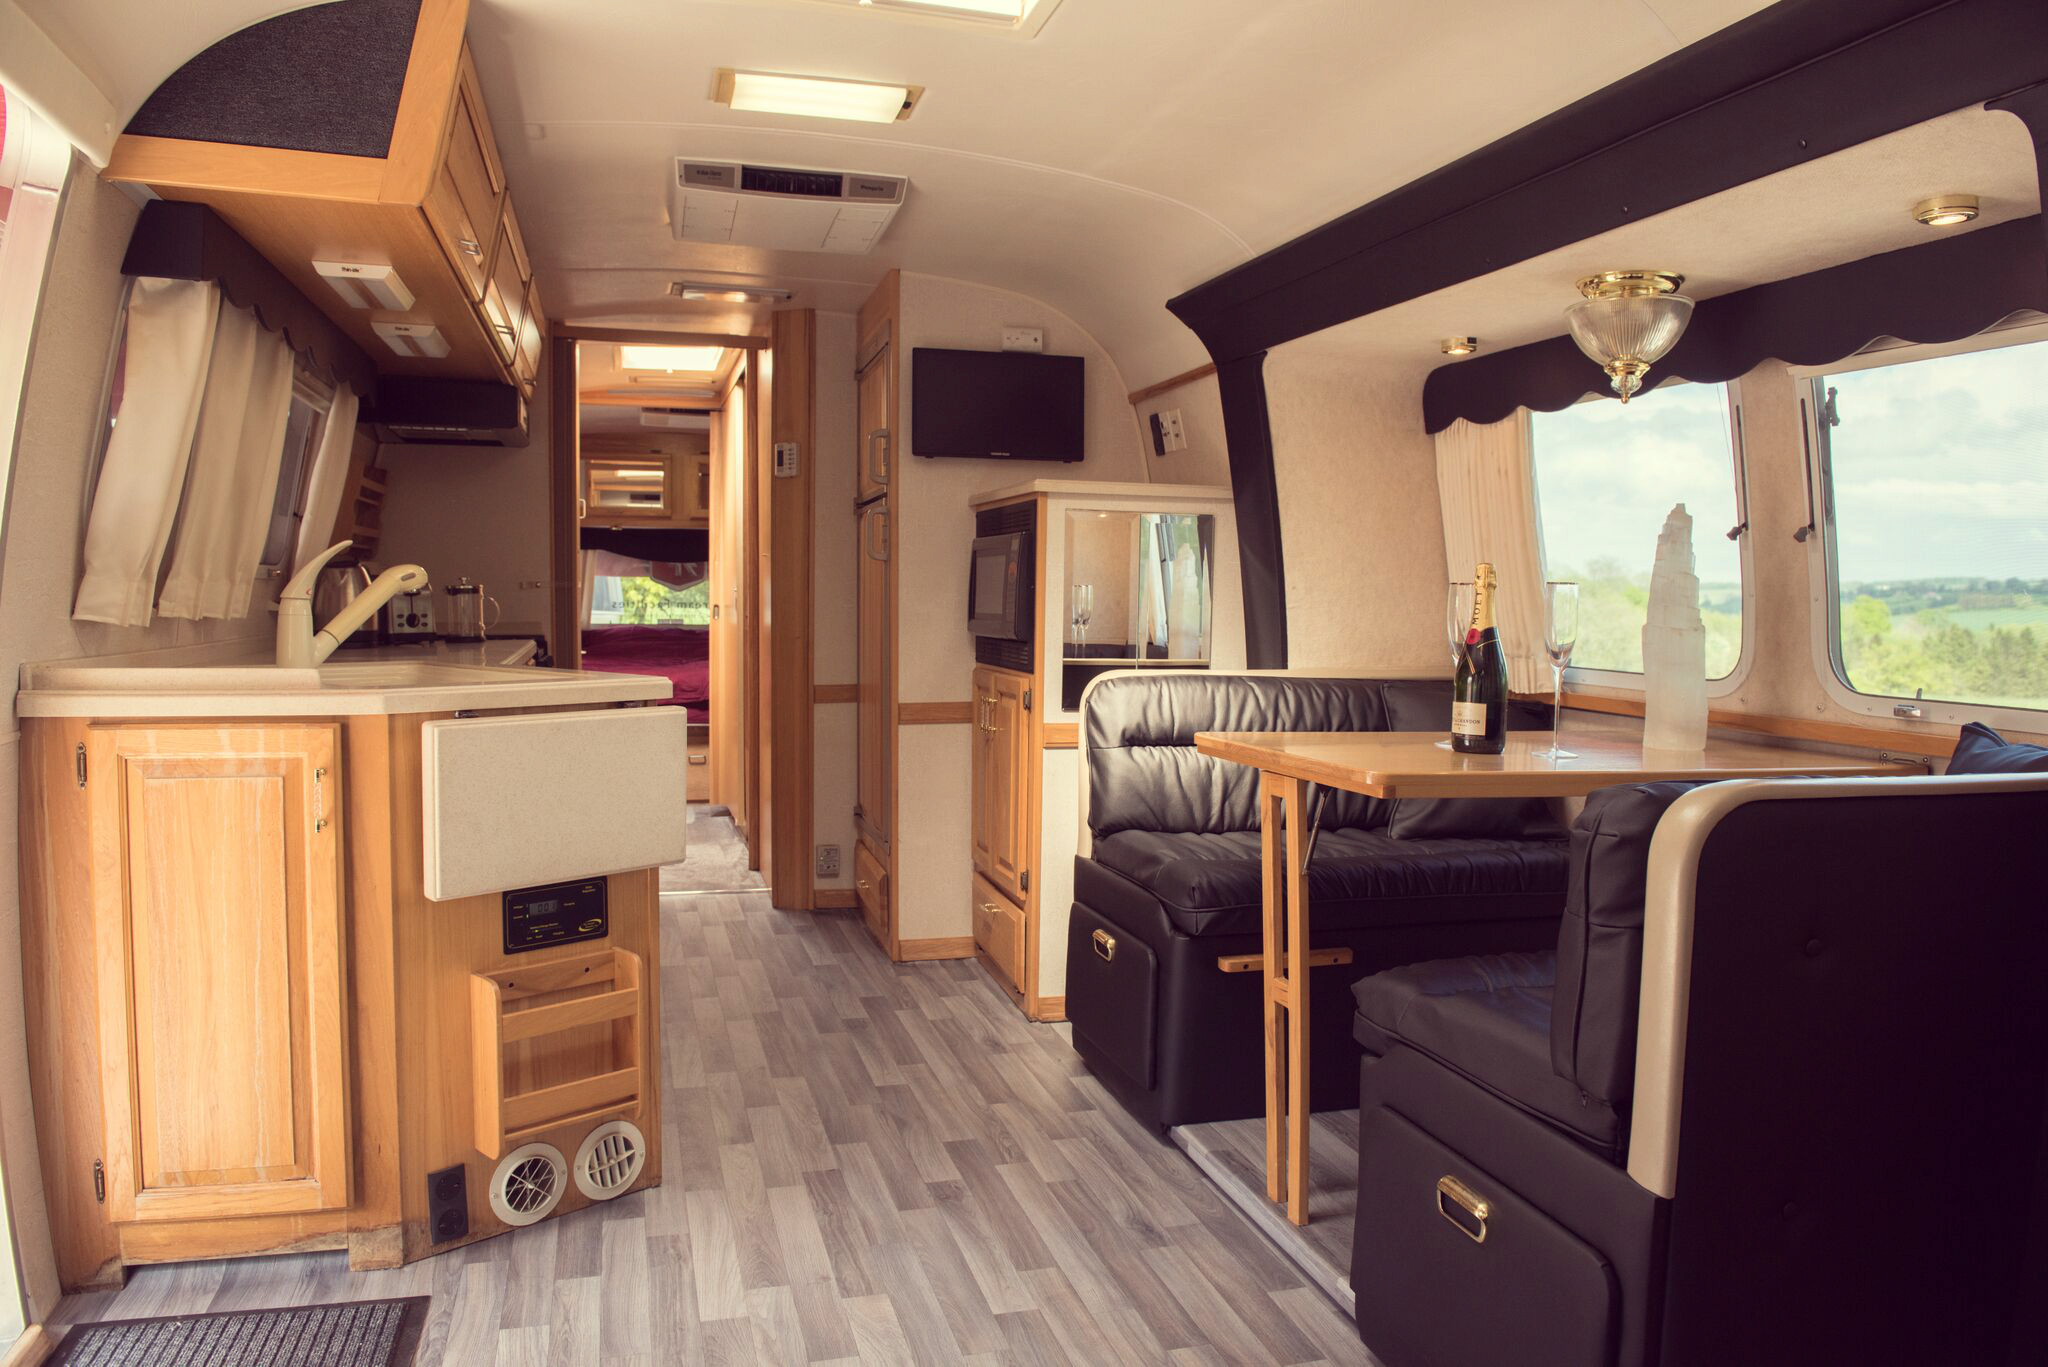 Hotel Bell Tent Accommodation Airstream Trailer Five Star